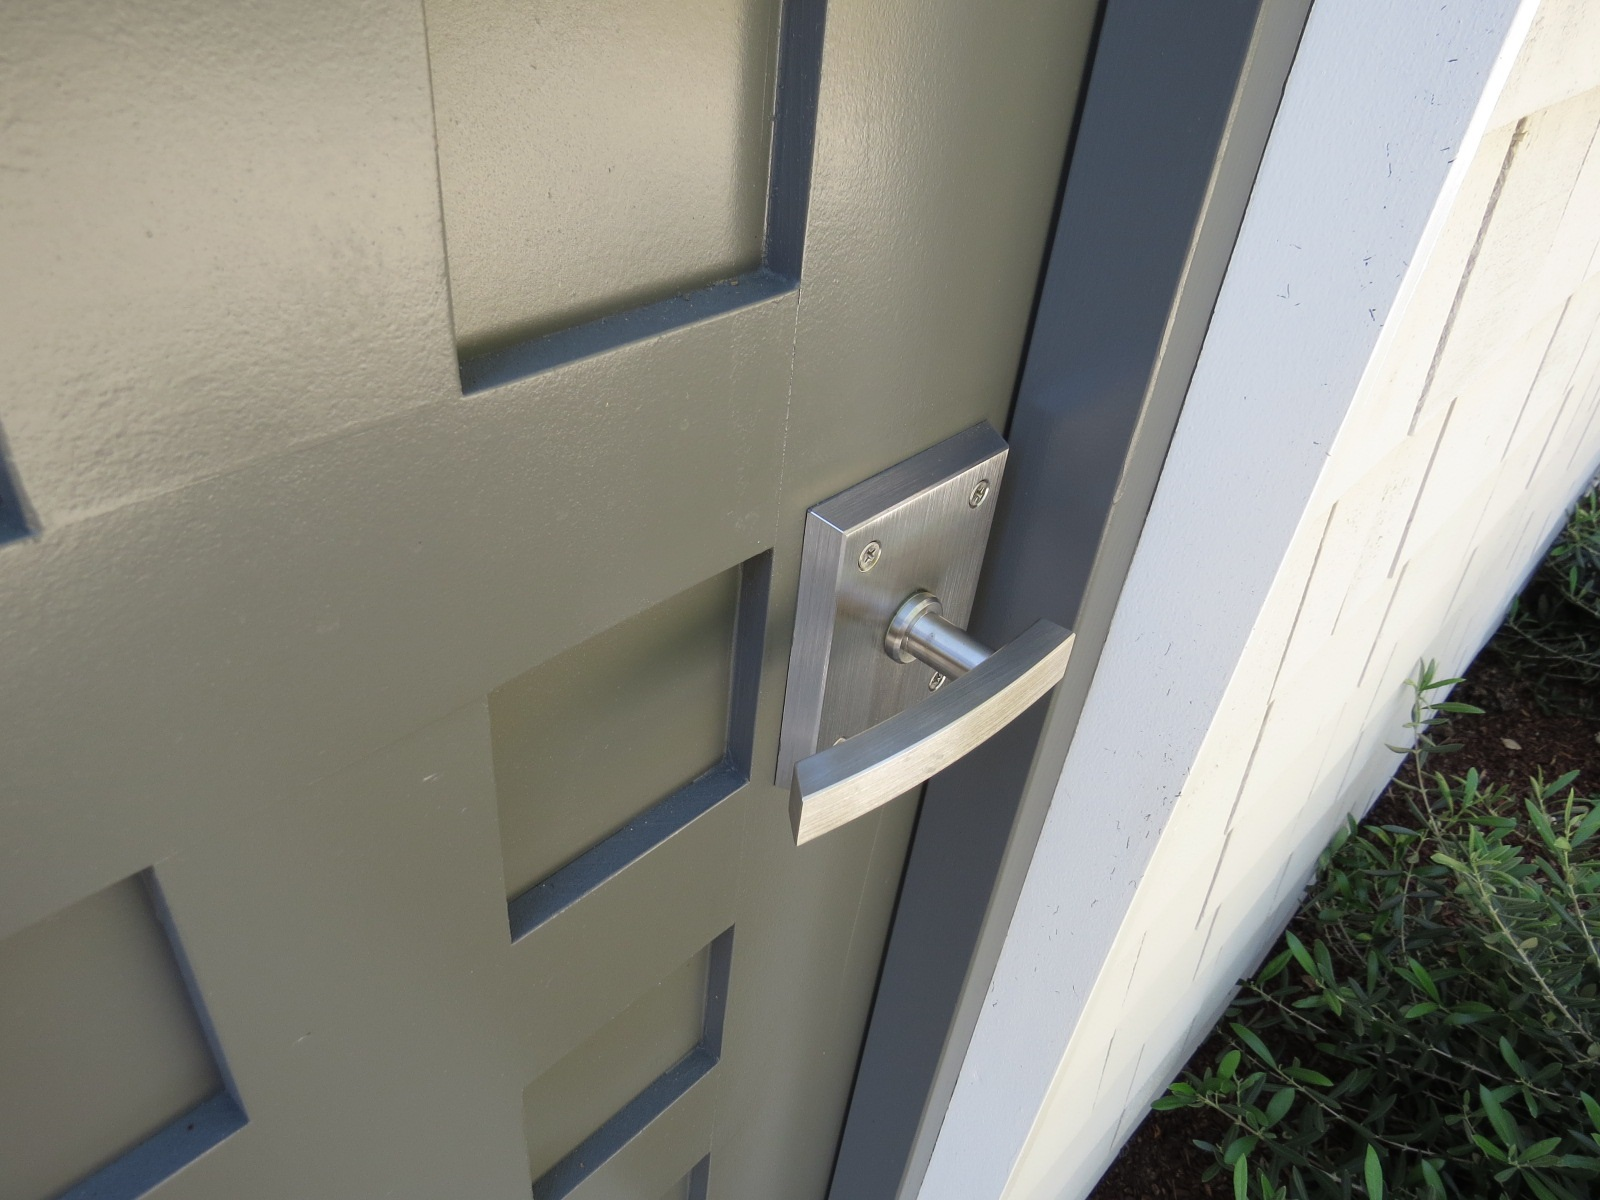 alta-contemporary-gate-latch-in-stainless-steel-on-pool-house-door-alta.jpg